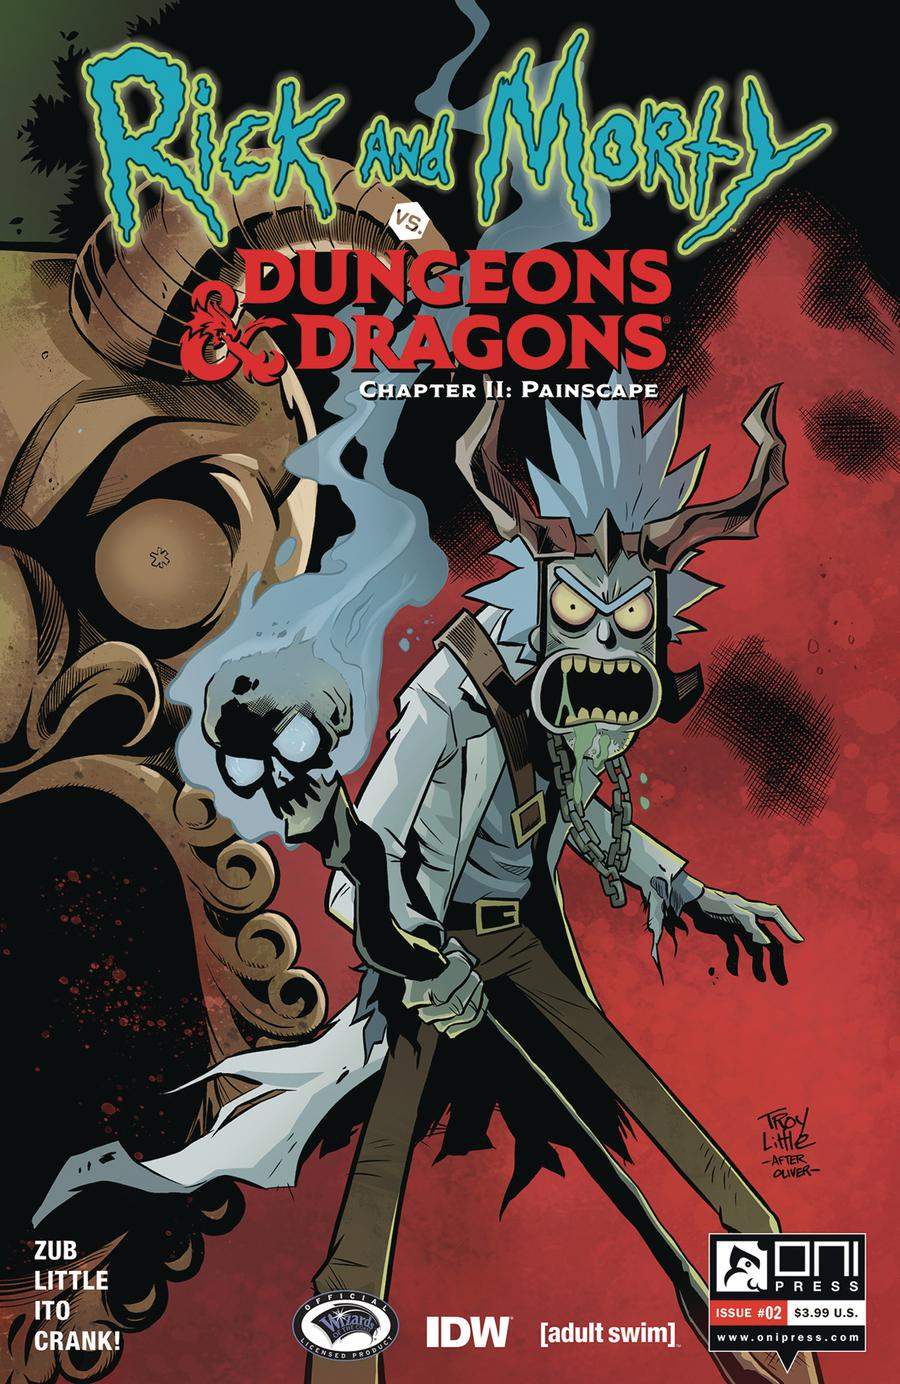 Rick And Morty vs Dungeons & Dragons Chapter II Painscape #2 Cover A Regular Troy Little Cover